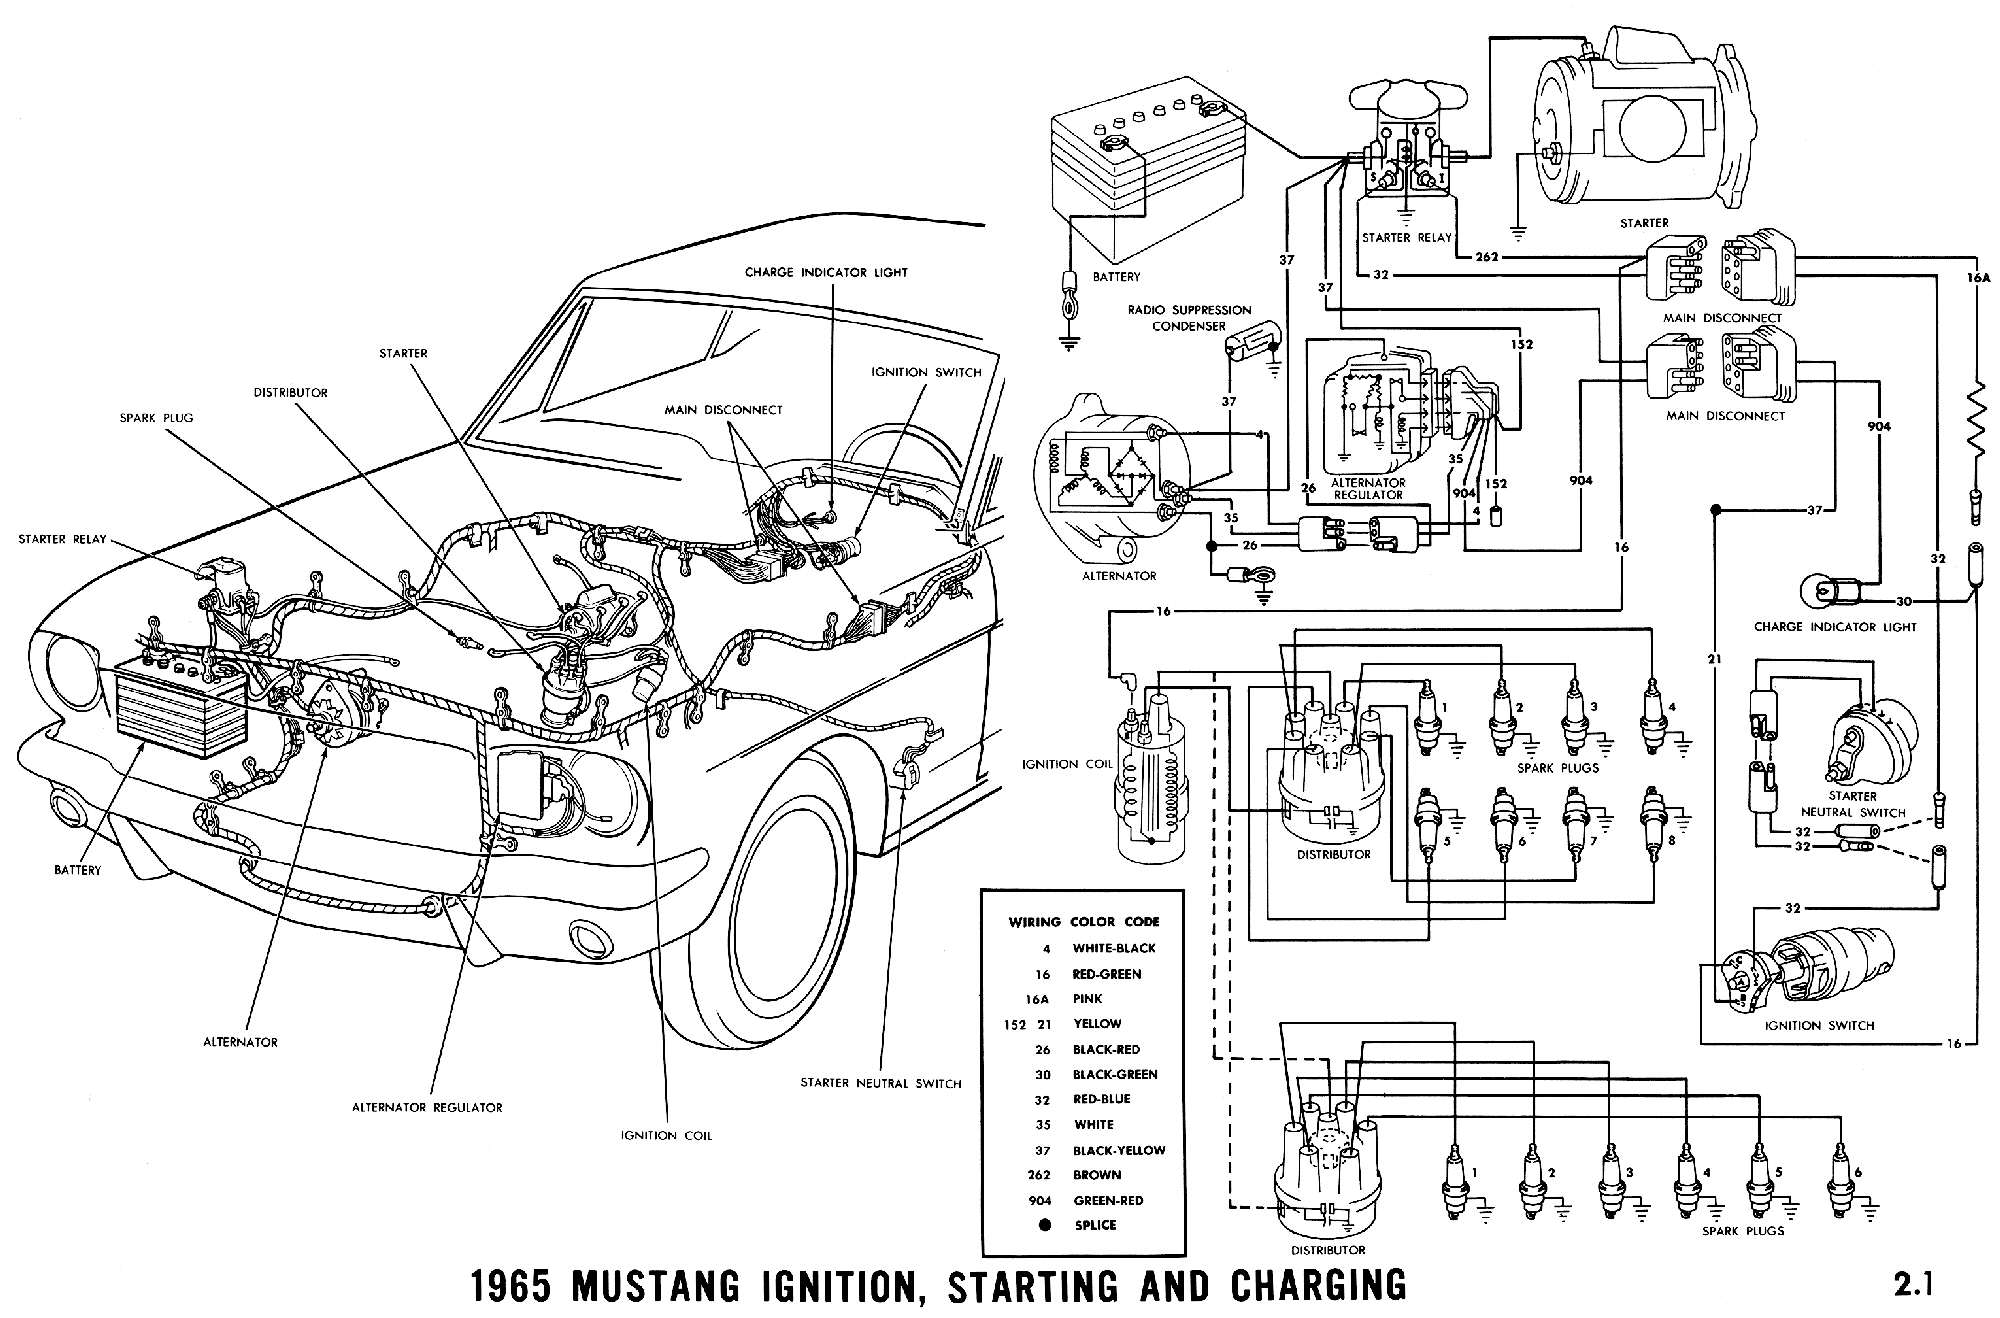 1965c 1965 mustang wiring diagrams average joe restoration 1969 mustang voltage regulator wiring diagram at mifinder.co